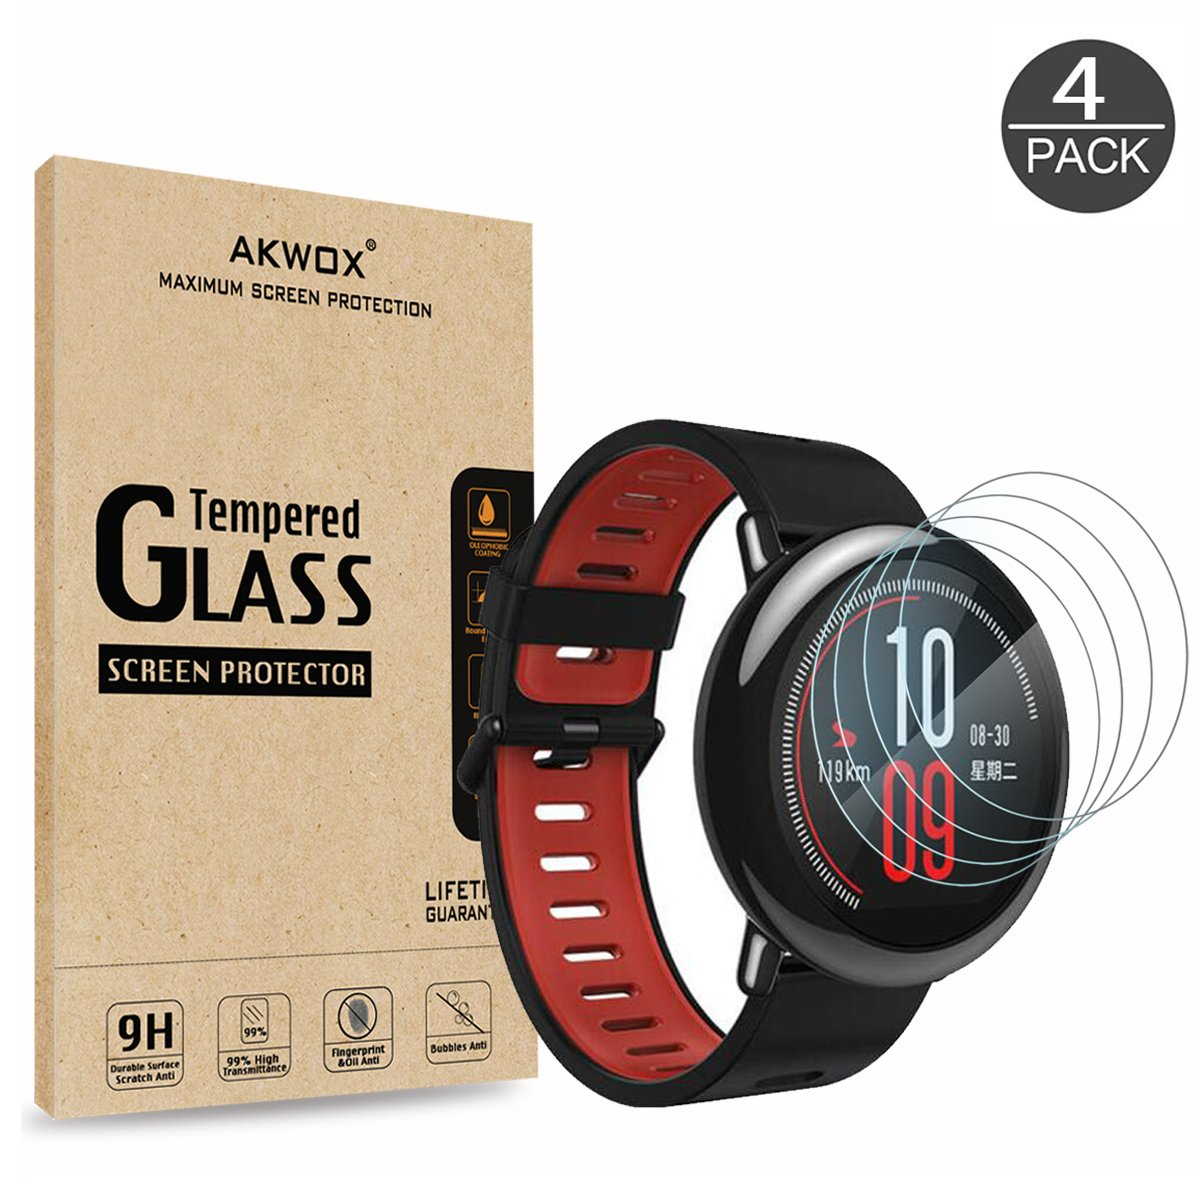 4 Pack Tempered Glass Screen Protector For Xiaomi Amazfit Akwox Pace 2 Stratos Cover Bumper Case Shell Frame 03mm 25d High Definition 9h Anti Scratch Huami